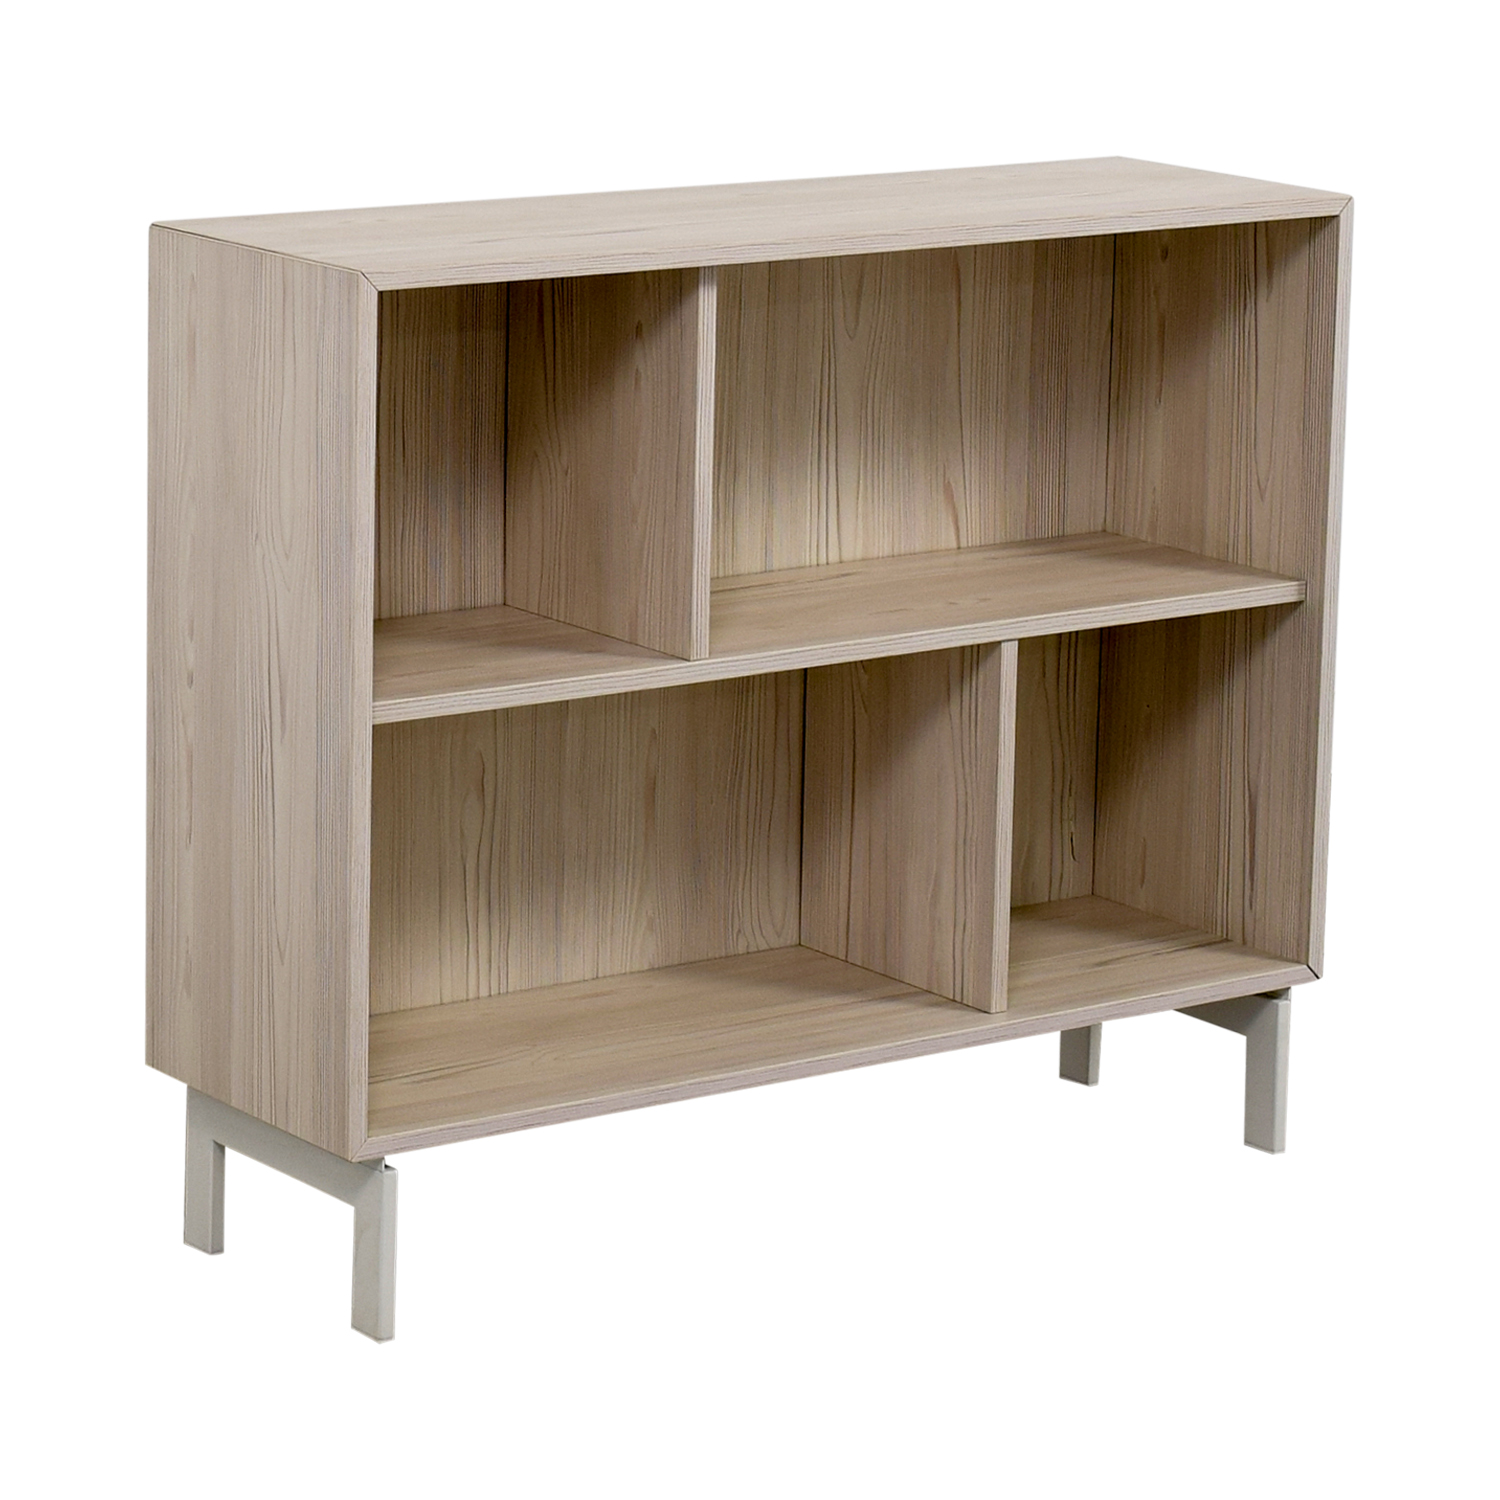 accent chairs ikea and table rentals 40% off - valje natural shelf / storage